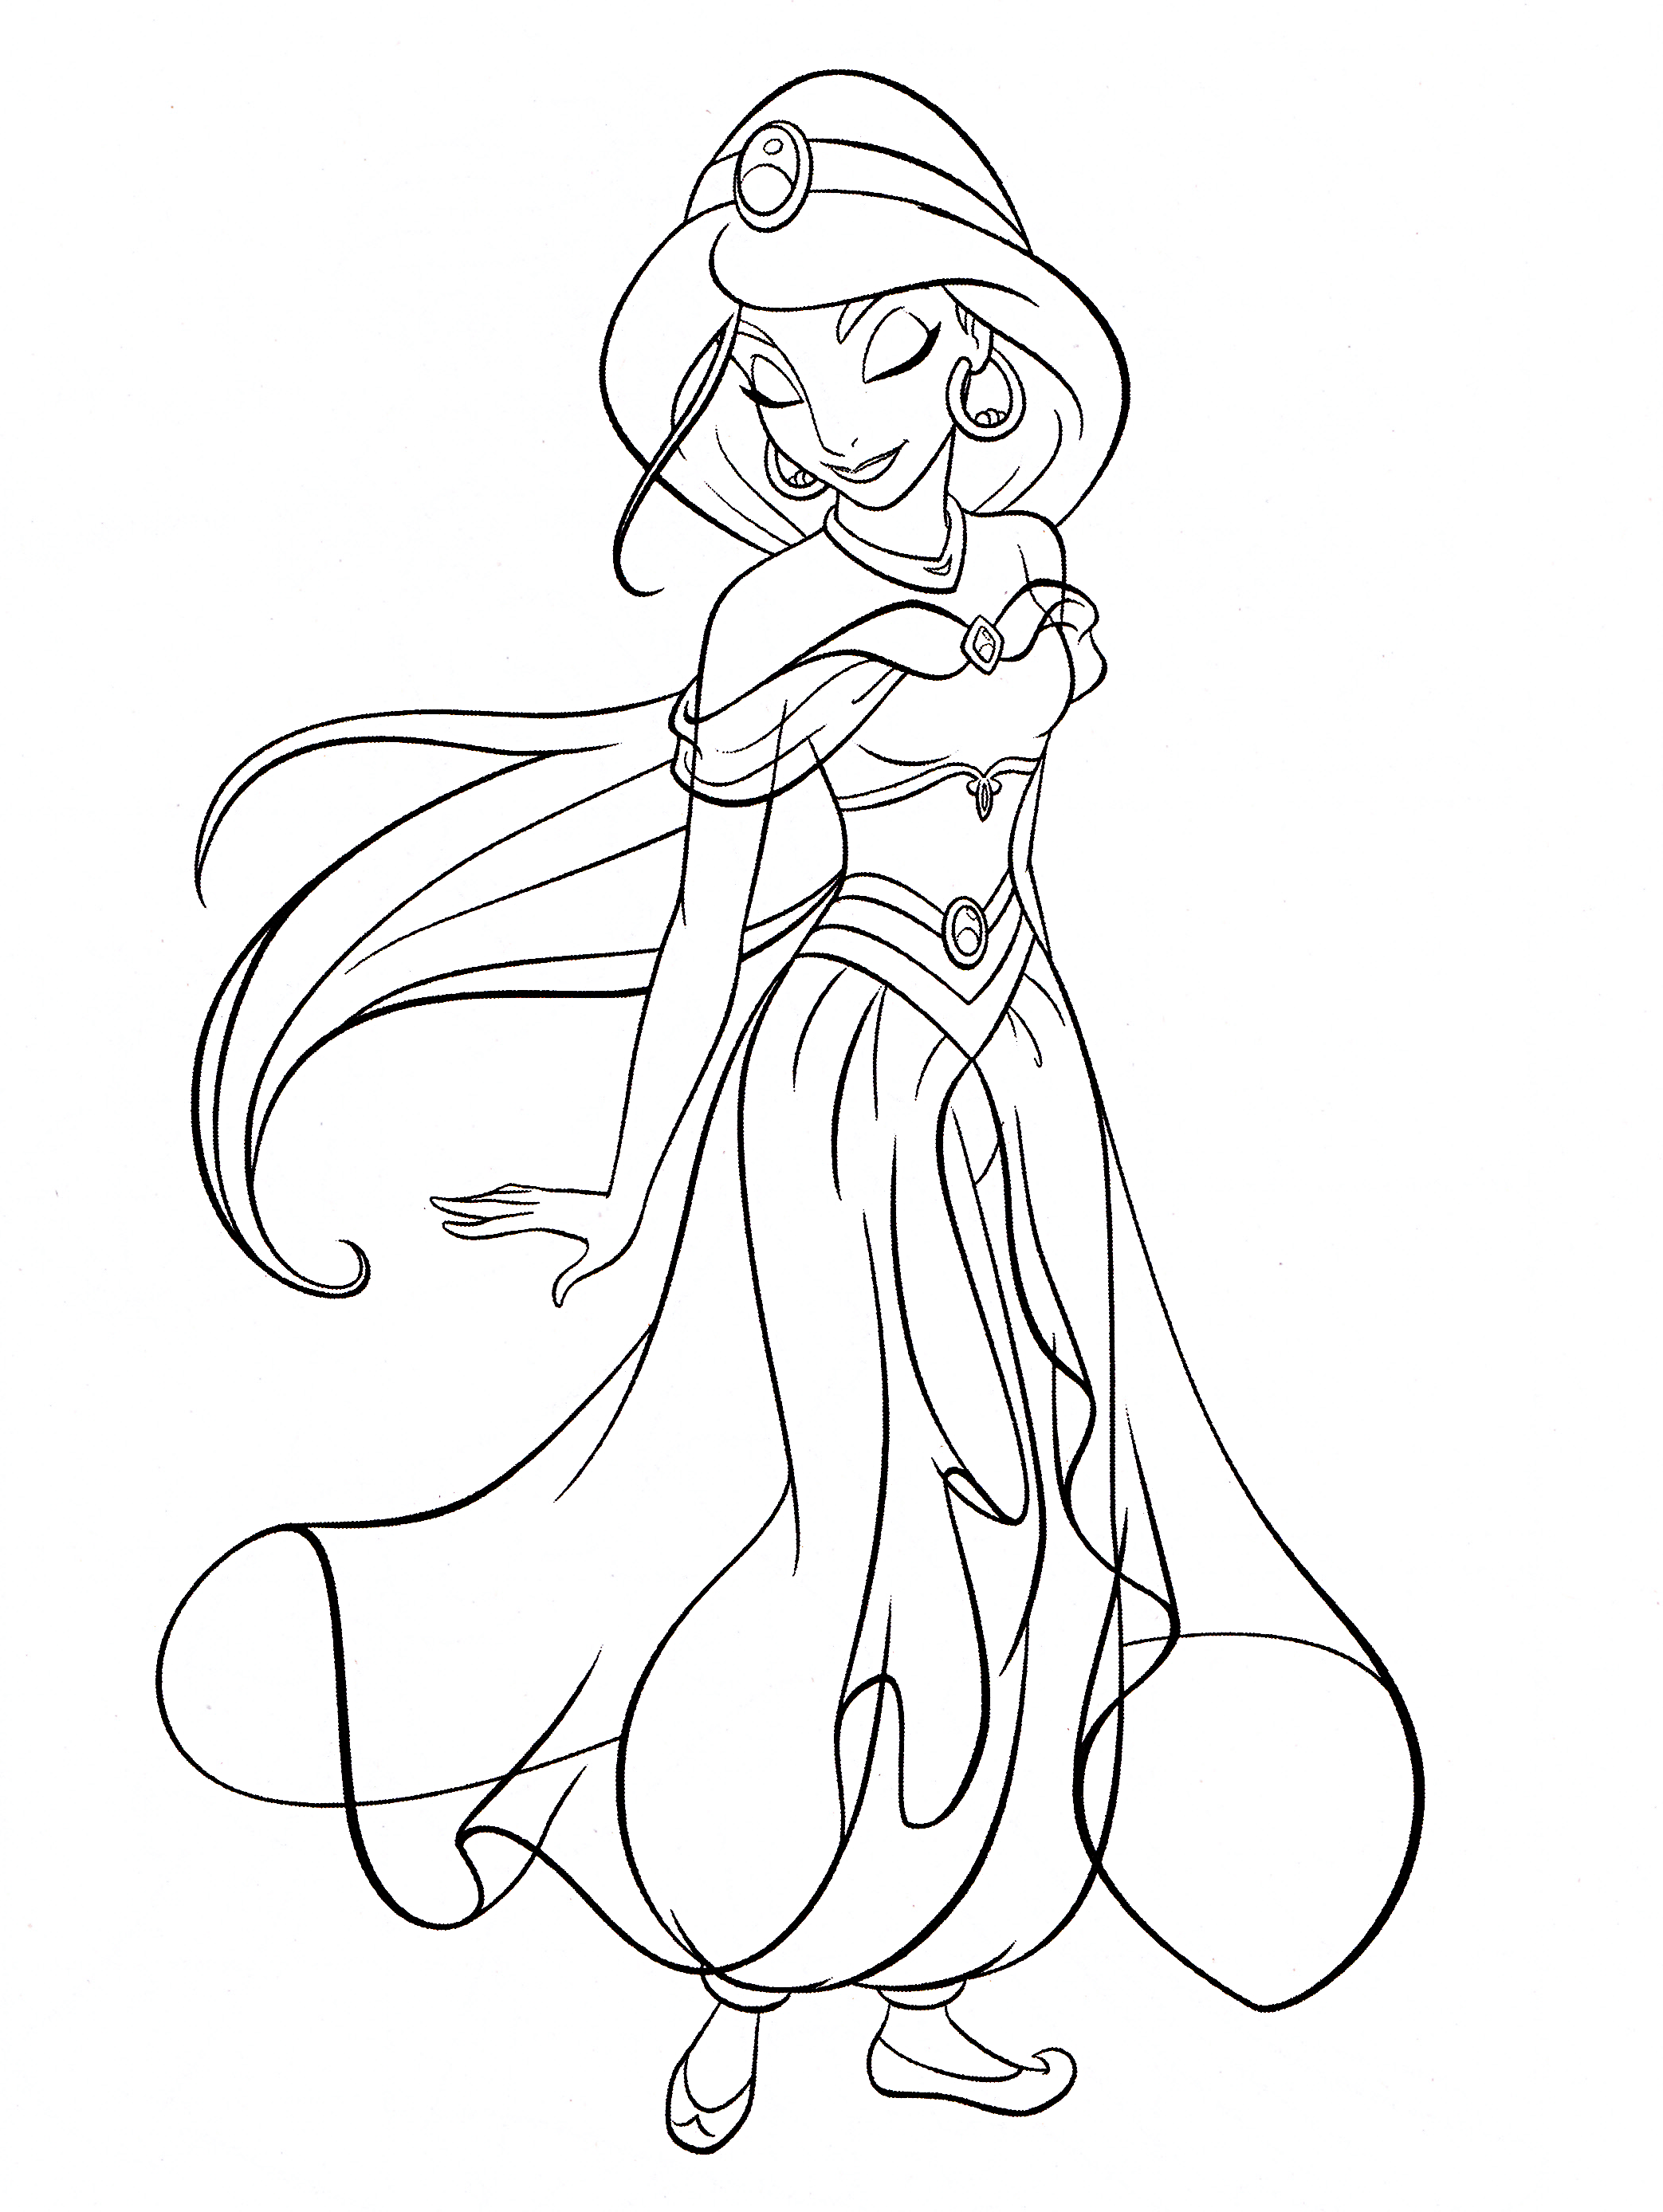 Walt Disney Characters Photo: Walt Disney Coloring Pages - Princess Jasmine  | Disney princess coloring pages, Disney princess colors, Princess coloring  pages